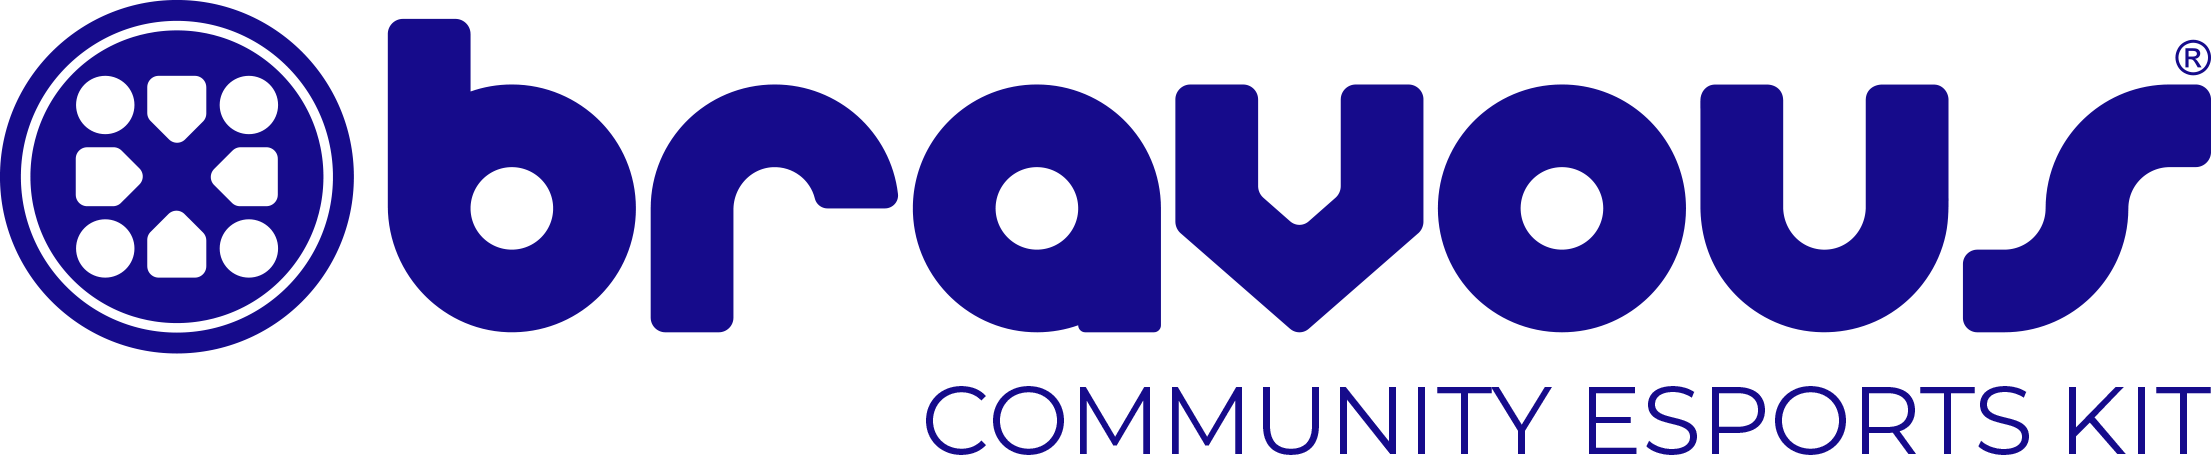 Community Builder Logo.png